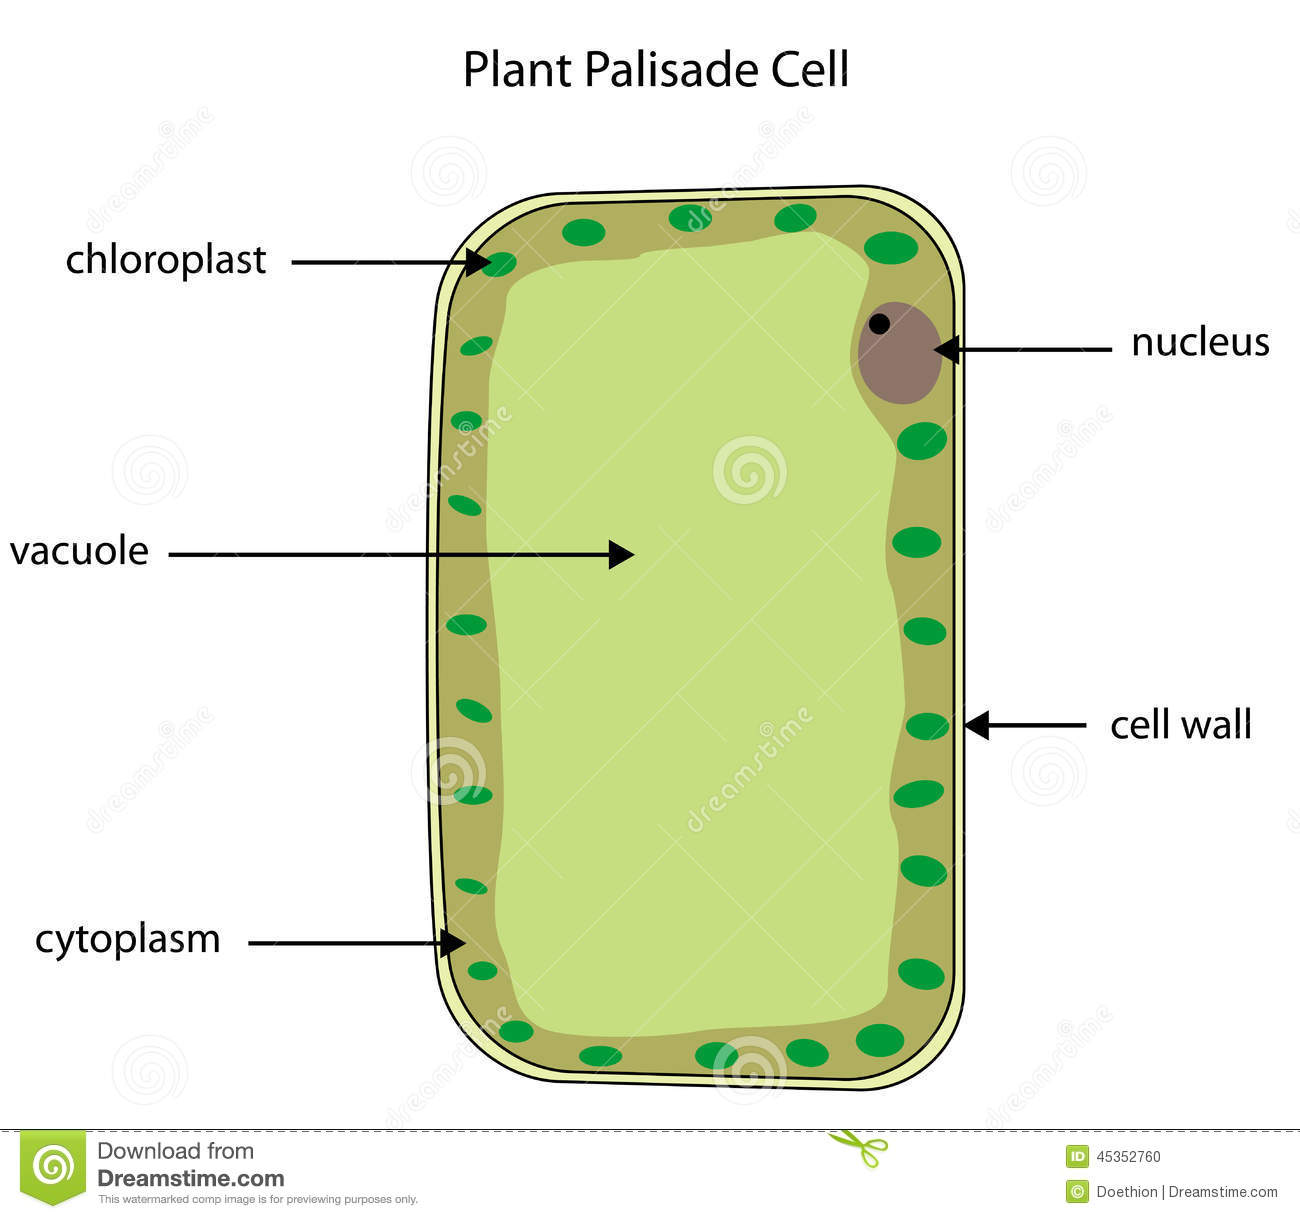 labelled diagram of plant palisade cell stock vector - illustration